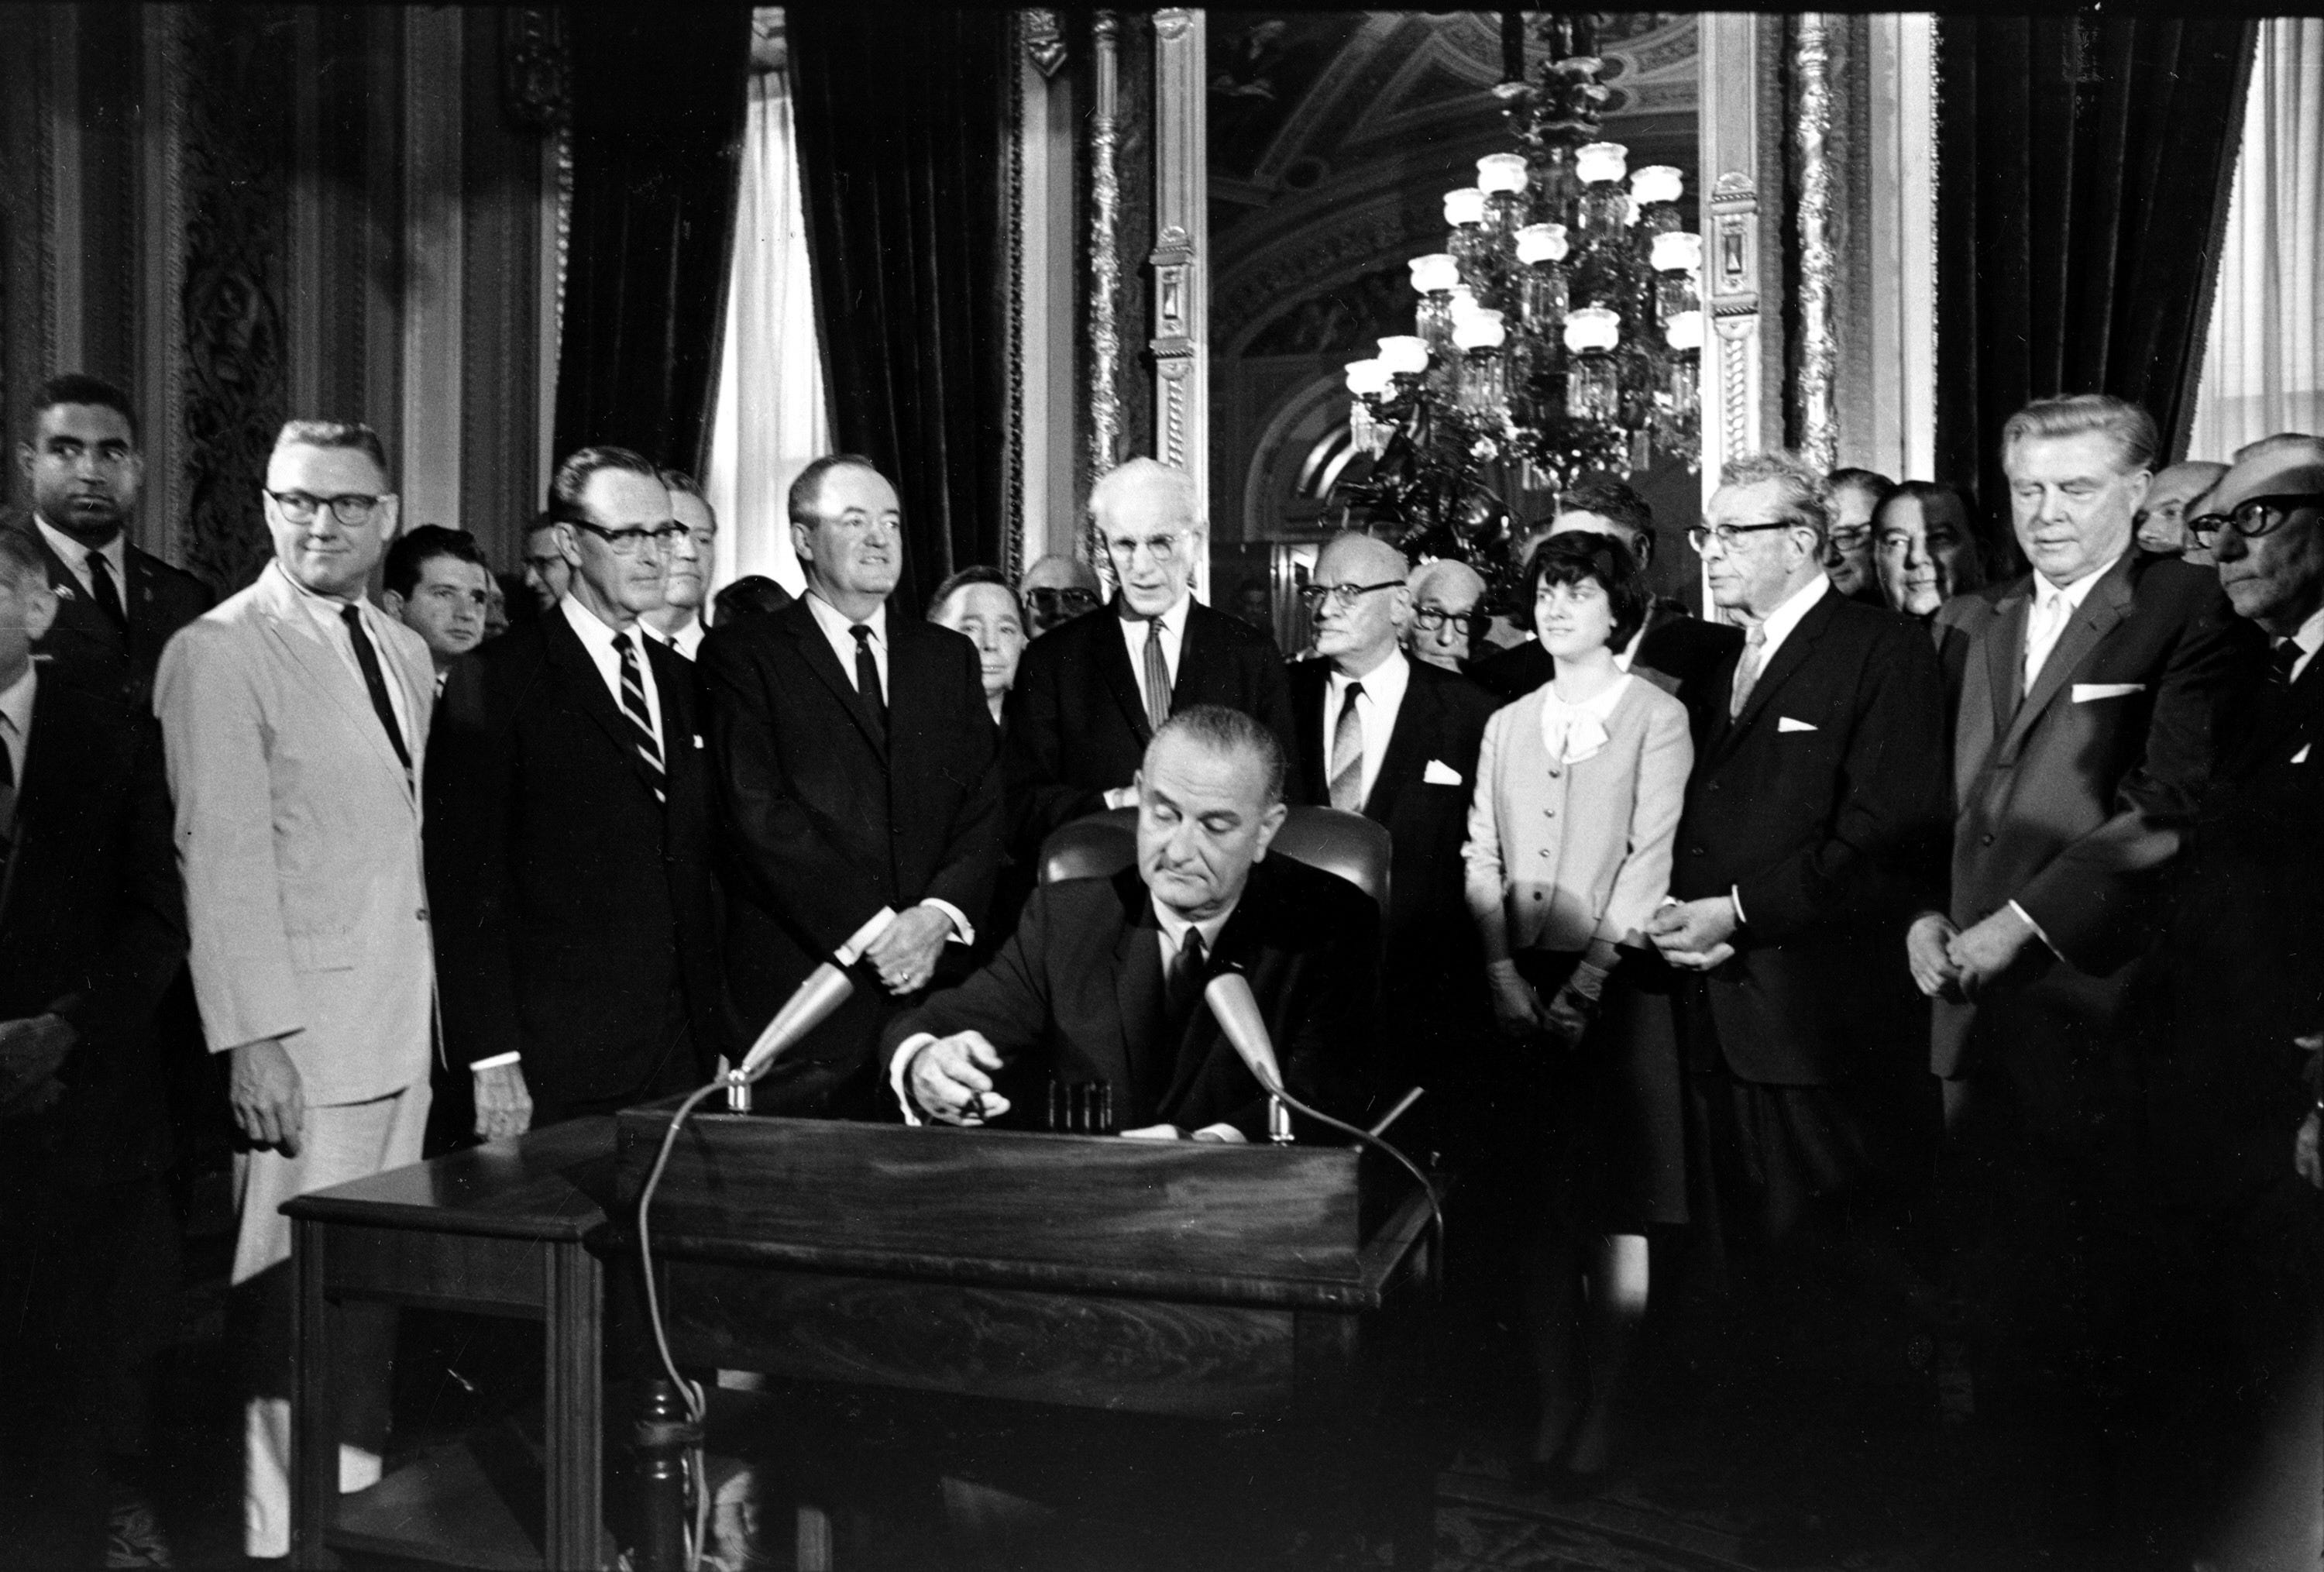 President Lyndon Johnson signs the Voting Rights Act of 1965 on Aug. 6.  Surrounding the president, from left above his right hand, Vice President Hubert Humphrey; Speaker John McCormack; Rep. Emanuel Celler, D-N.Y.; first daughter Luci Johnson; and Sen. Everett Dirkson, R-Ill.  Behind Humphrey is House Majority Leader Carl Albert of Oklahoma; and behind Celler is Sen. Carl Hayden, D-Ariz.